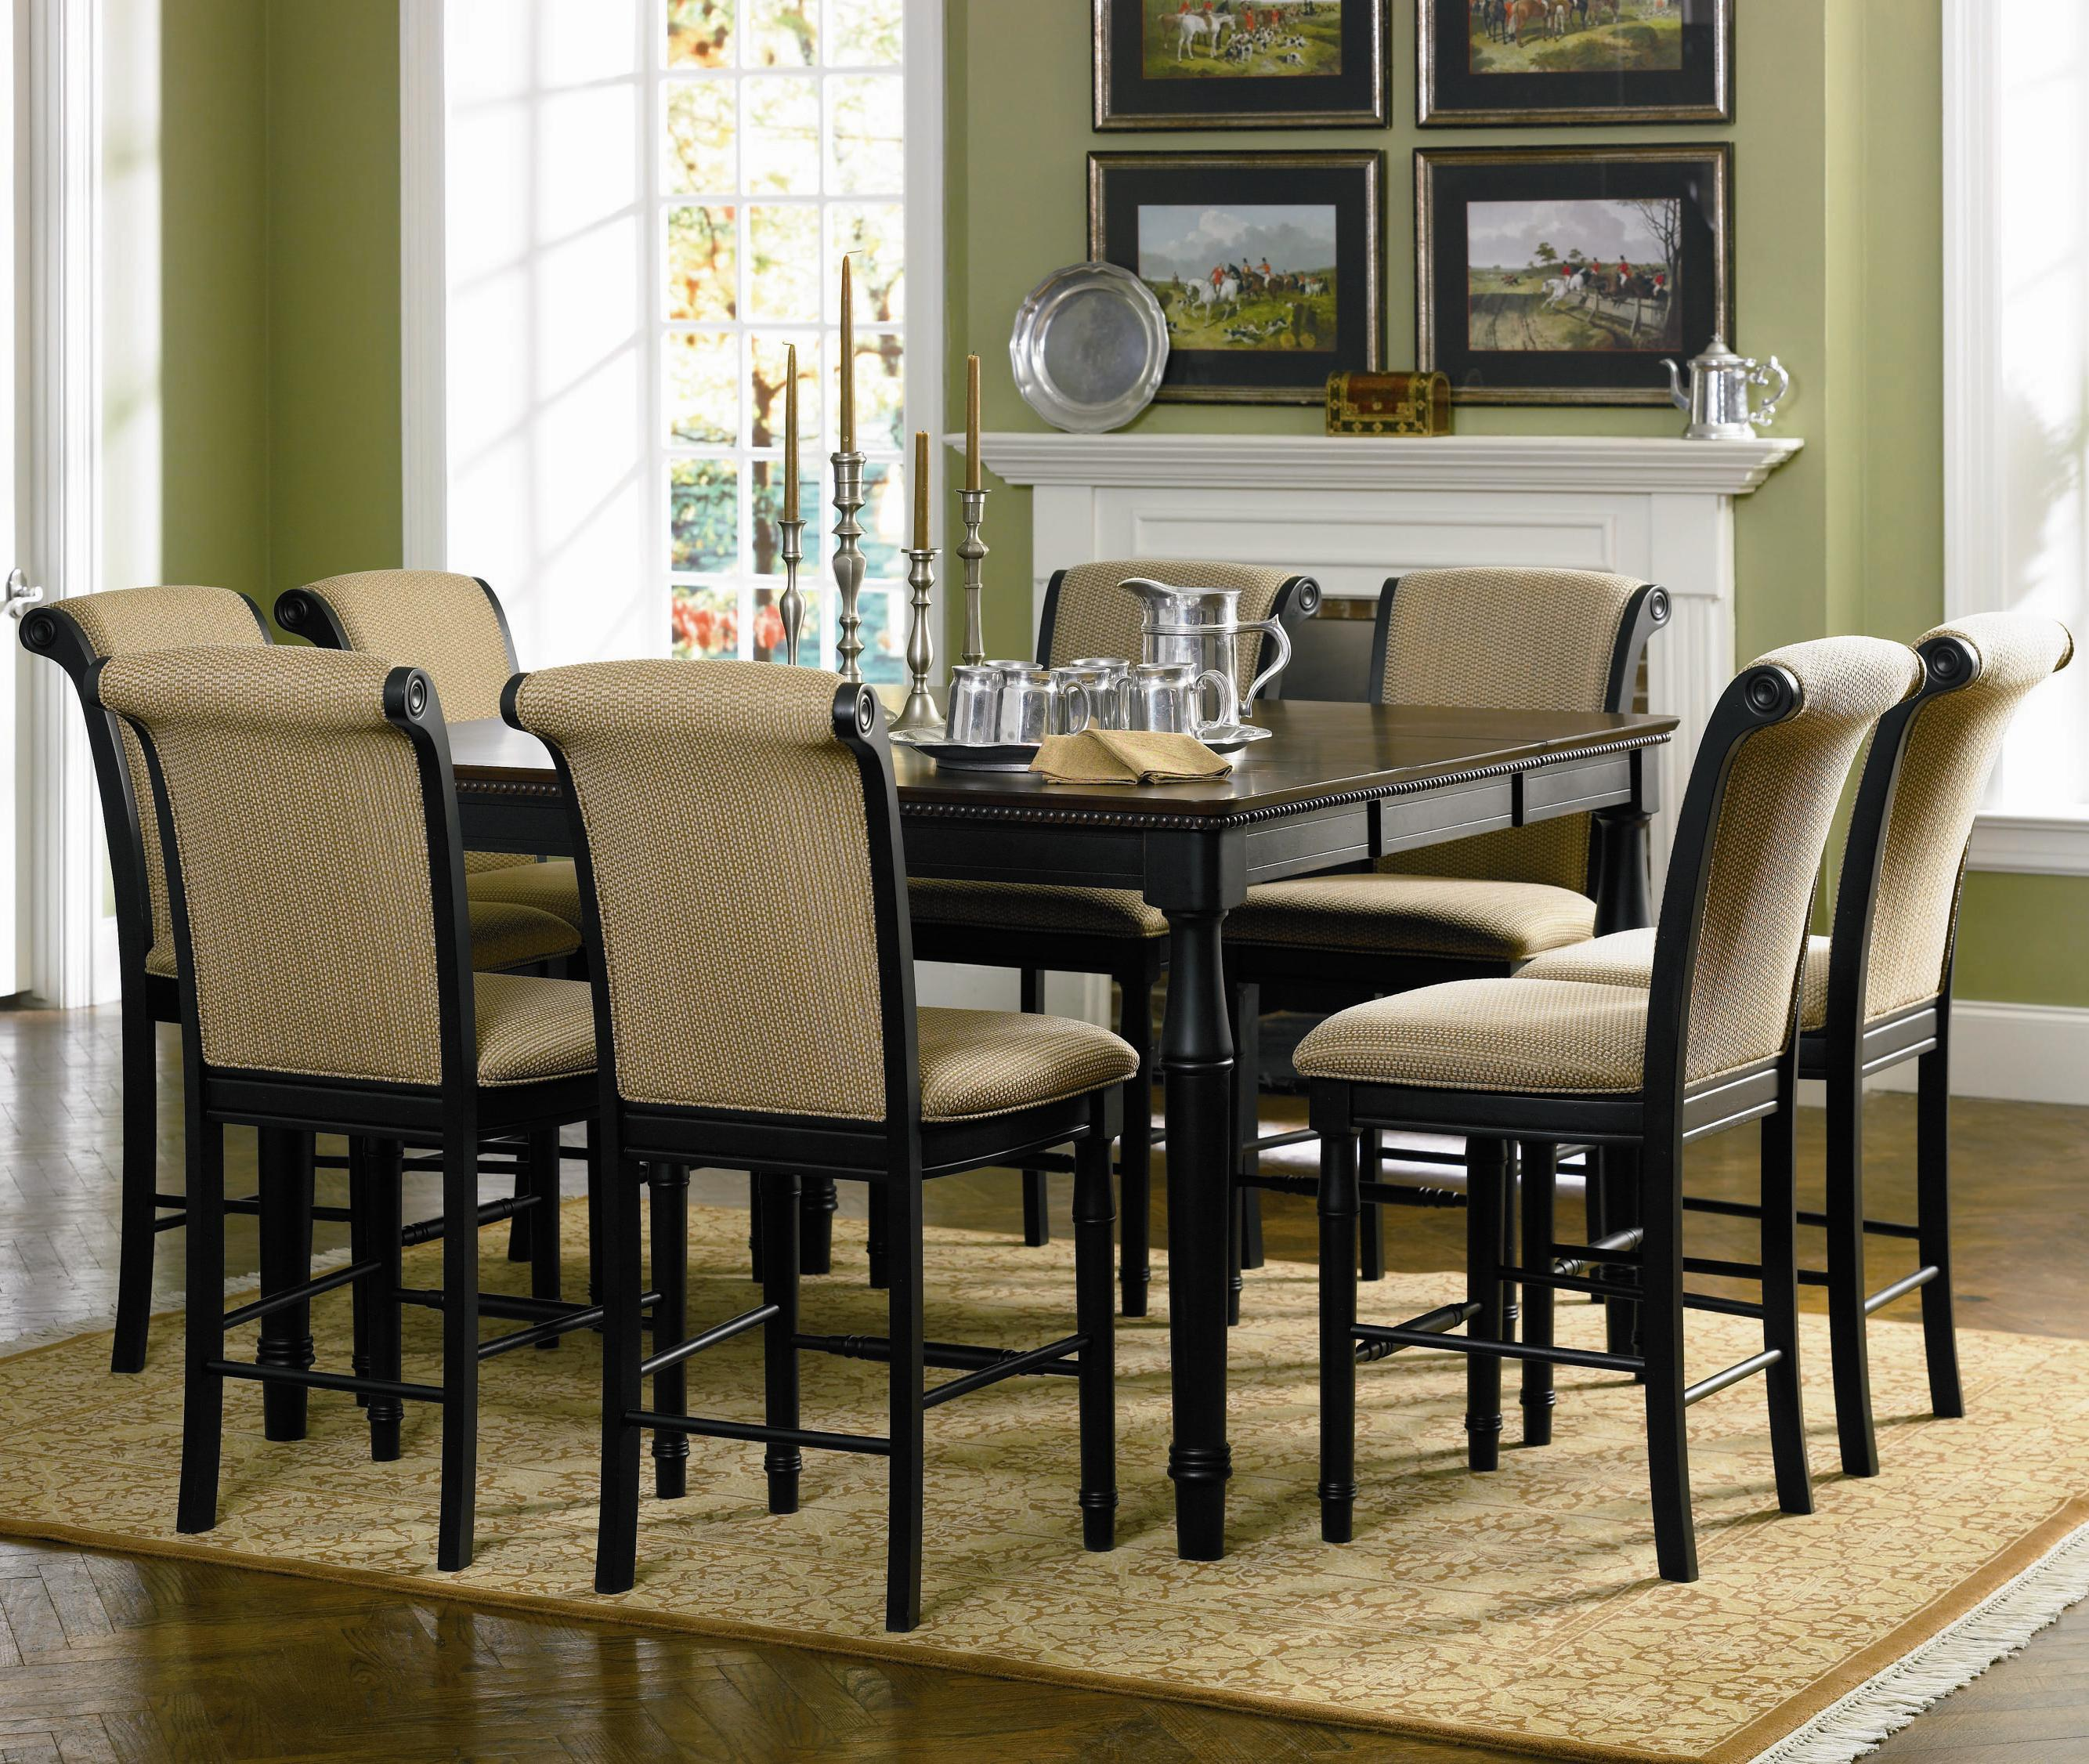 Cabrillo 9 Piece Counter Height Dining Set 101828 - Silver ...